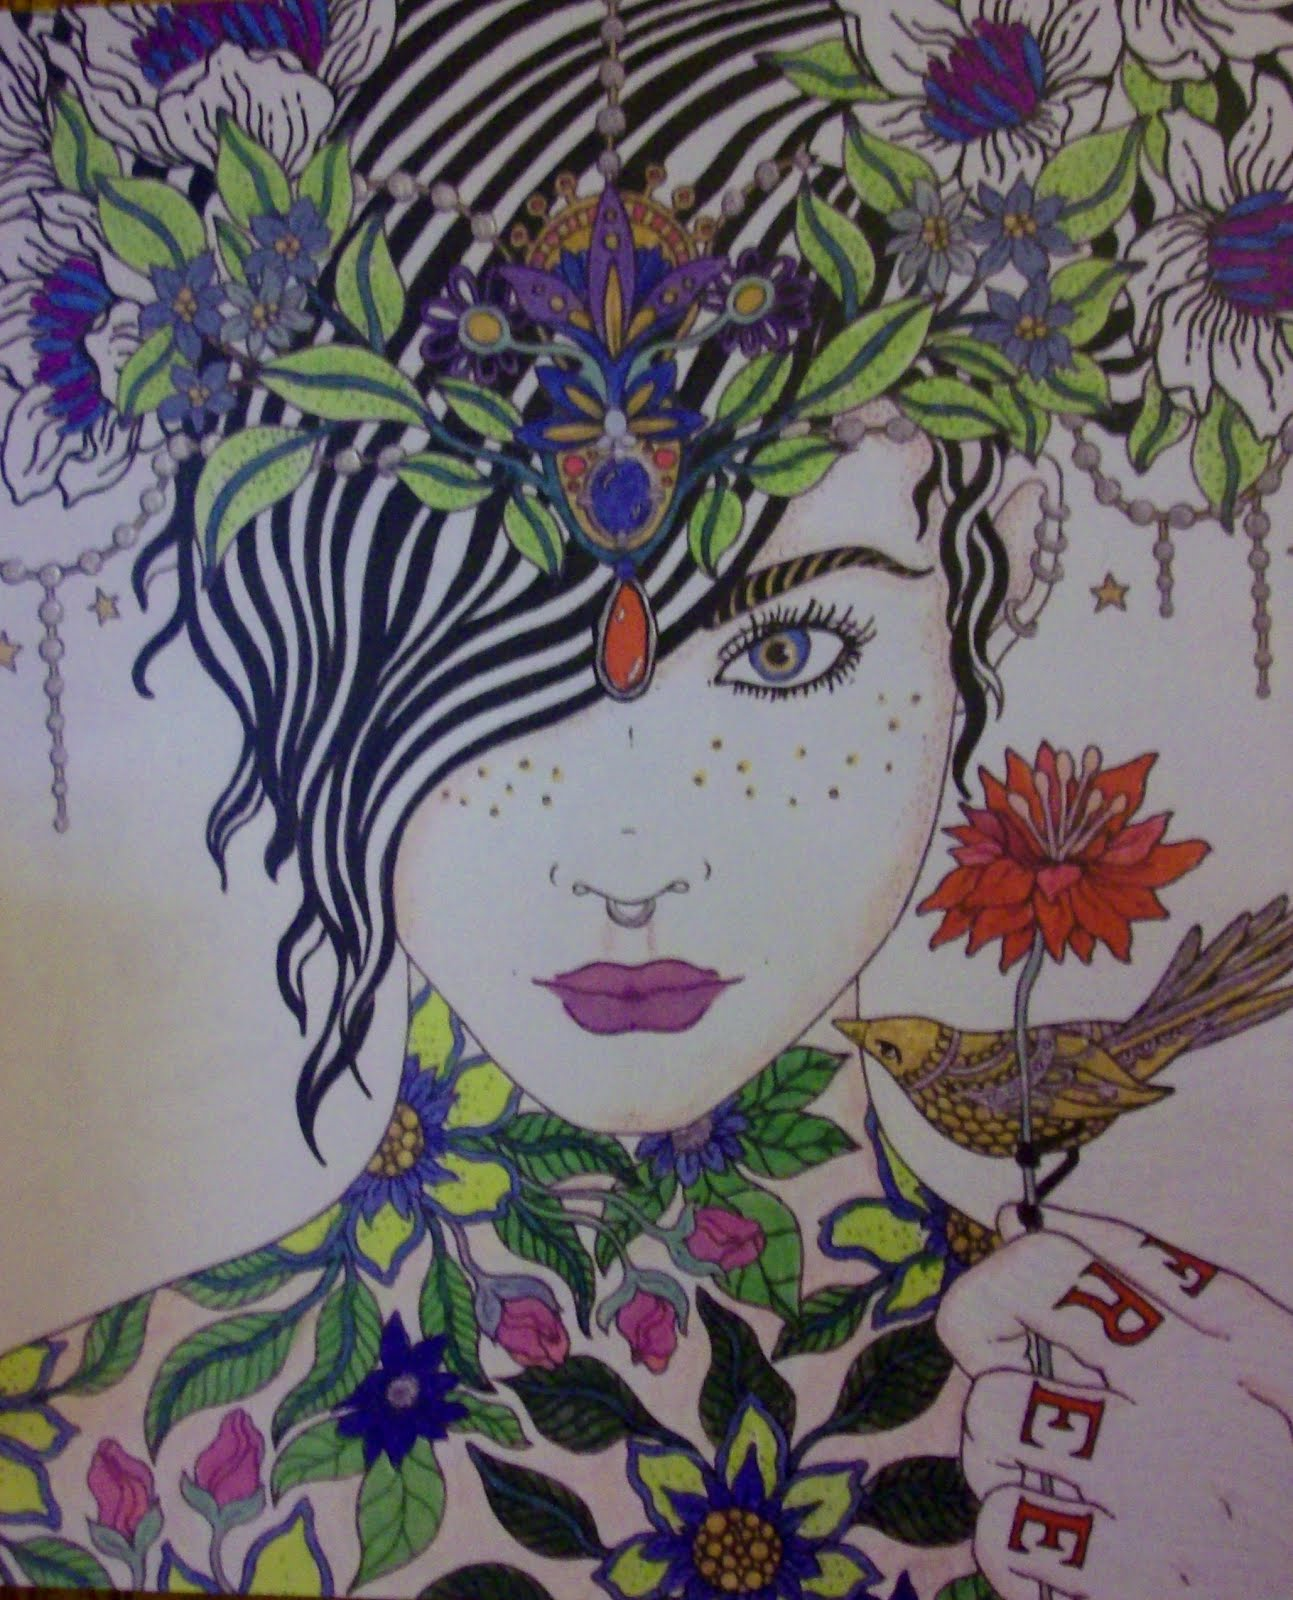 My Coloring Art, On A Canvas